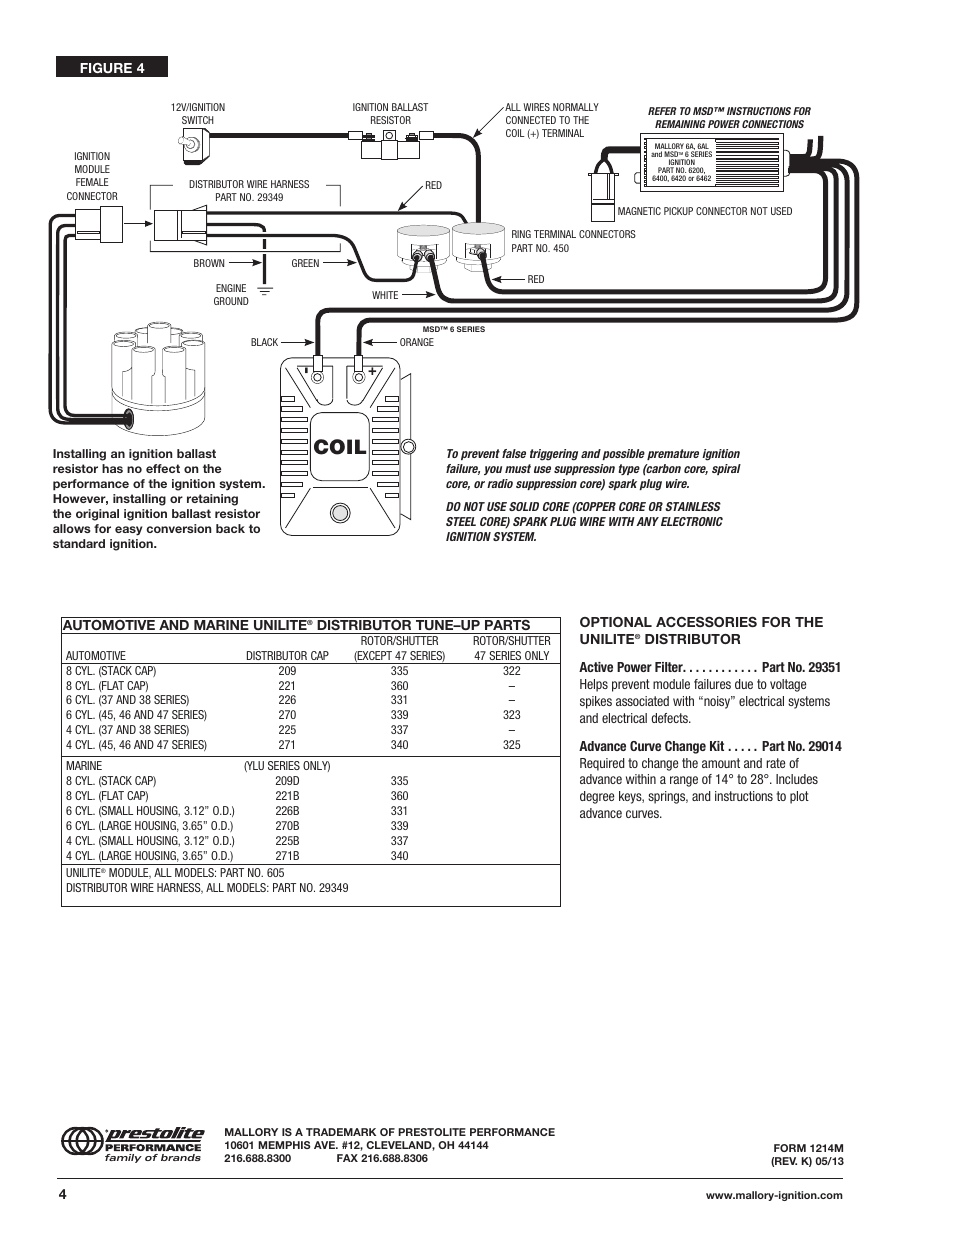 mallory ignition mallory unilite distributor 37_38_45_47 page4?resize\\\\\\\\\\\\\\\\\\\\\\\=665%2C861 mallory ignition hyfire wiring diagram wiring diagrams mallory hyfire 6a wiring diagram at aneh.co